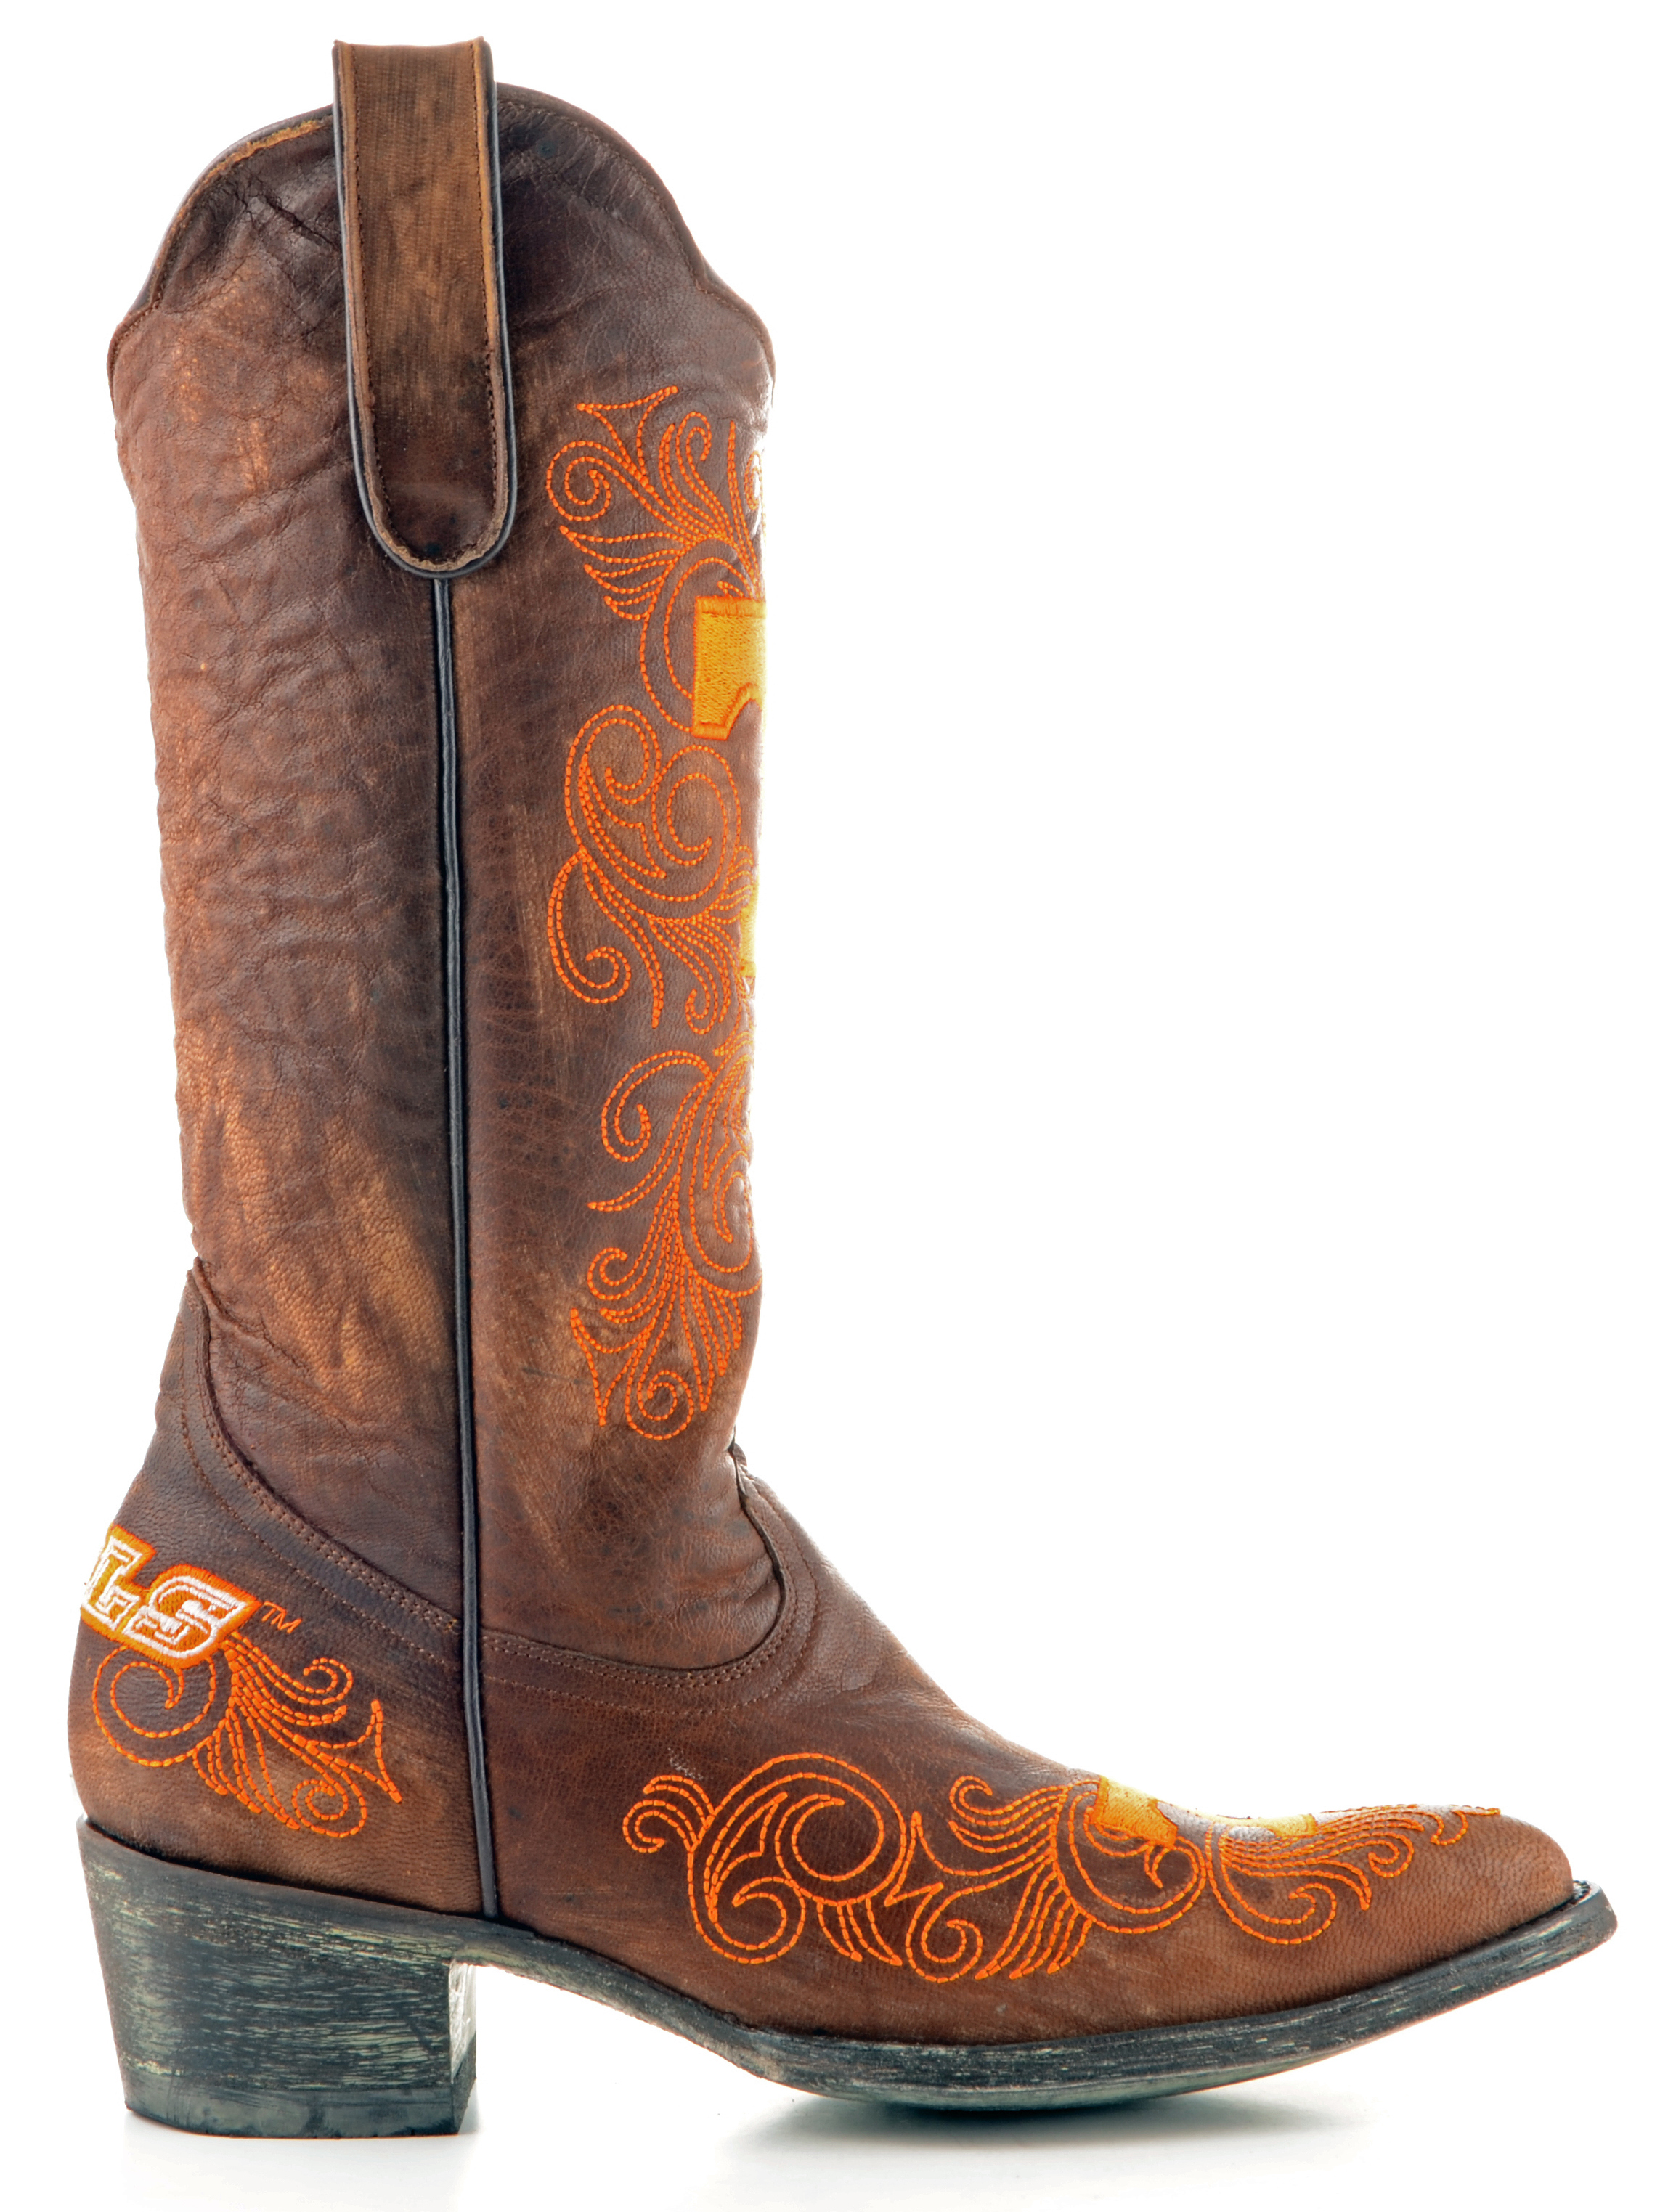 ncaa tennessee volunteers women's 13-inch gameday boots, brass, 5.5 b (m) us